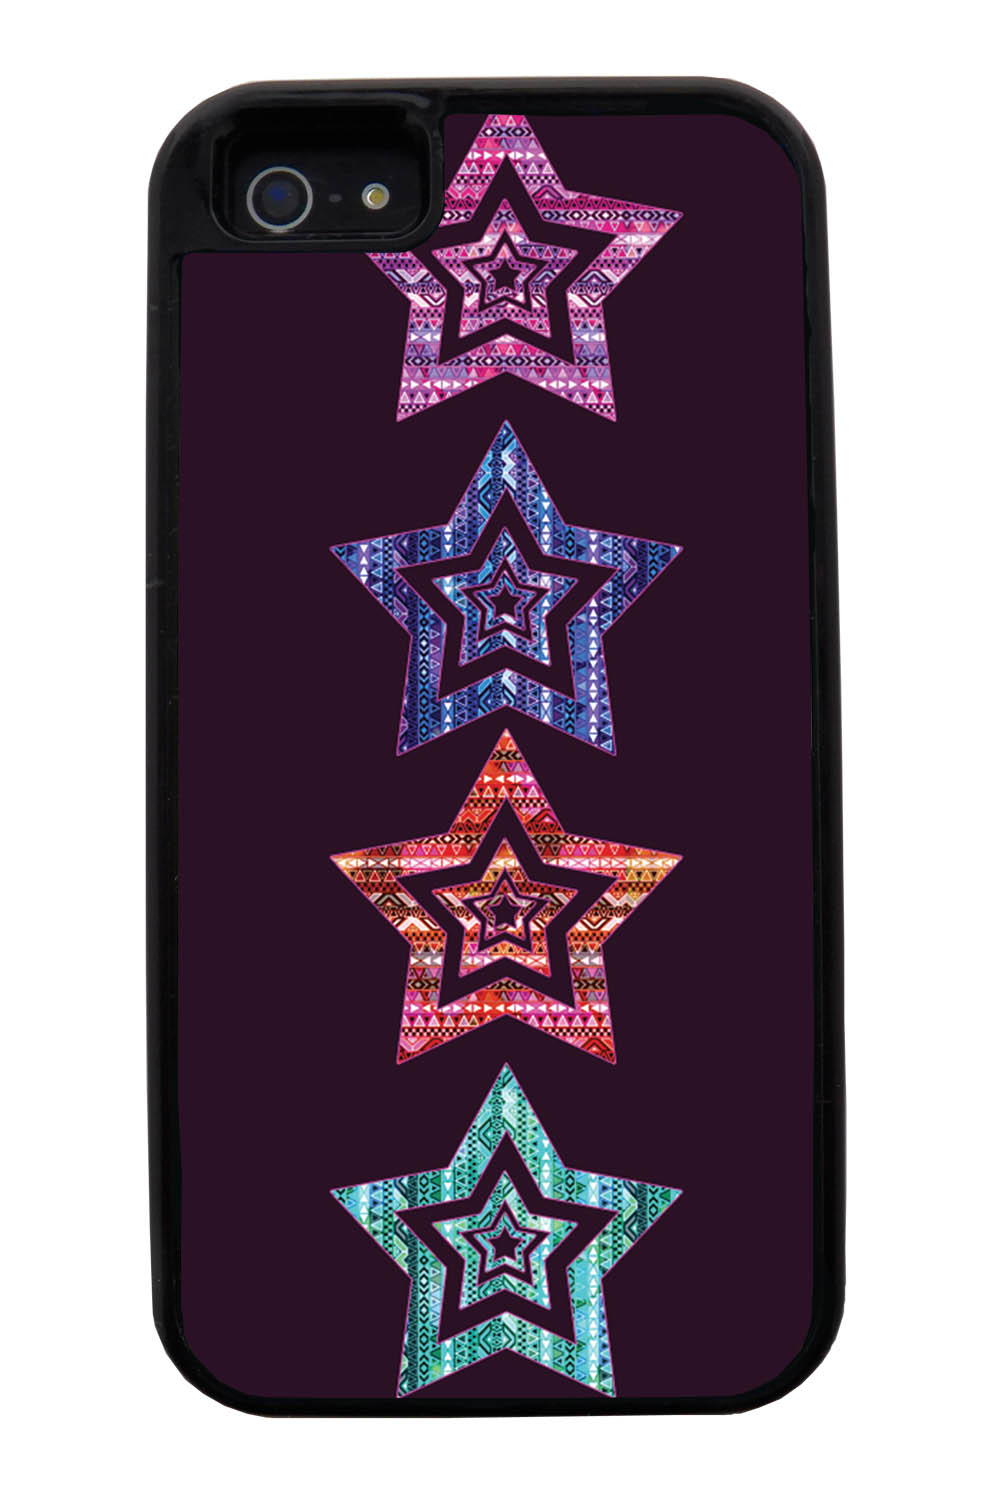 Apple iPhone 5 / 5S Aztec Case - Patterned Stars - Geometric - Black Tough Hybrid Case